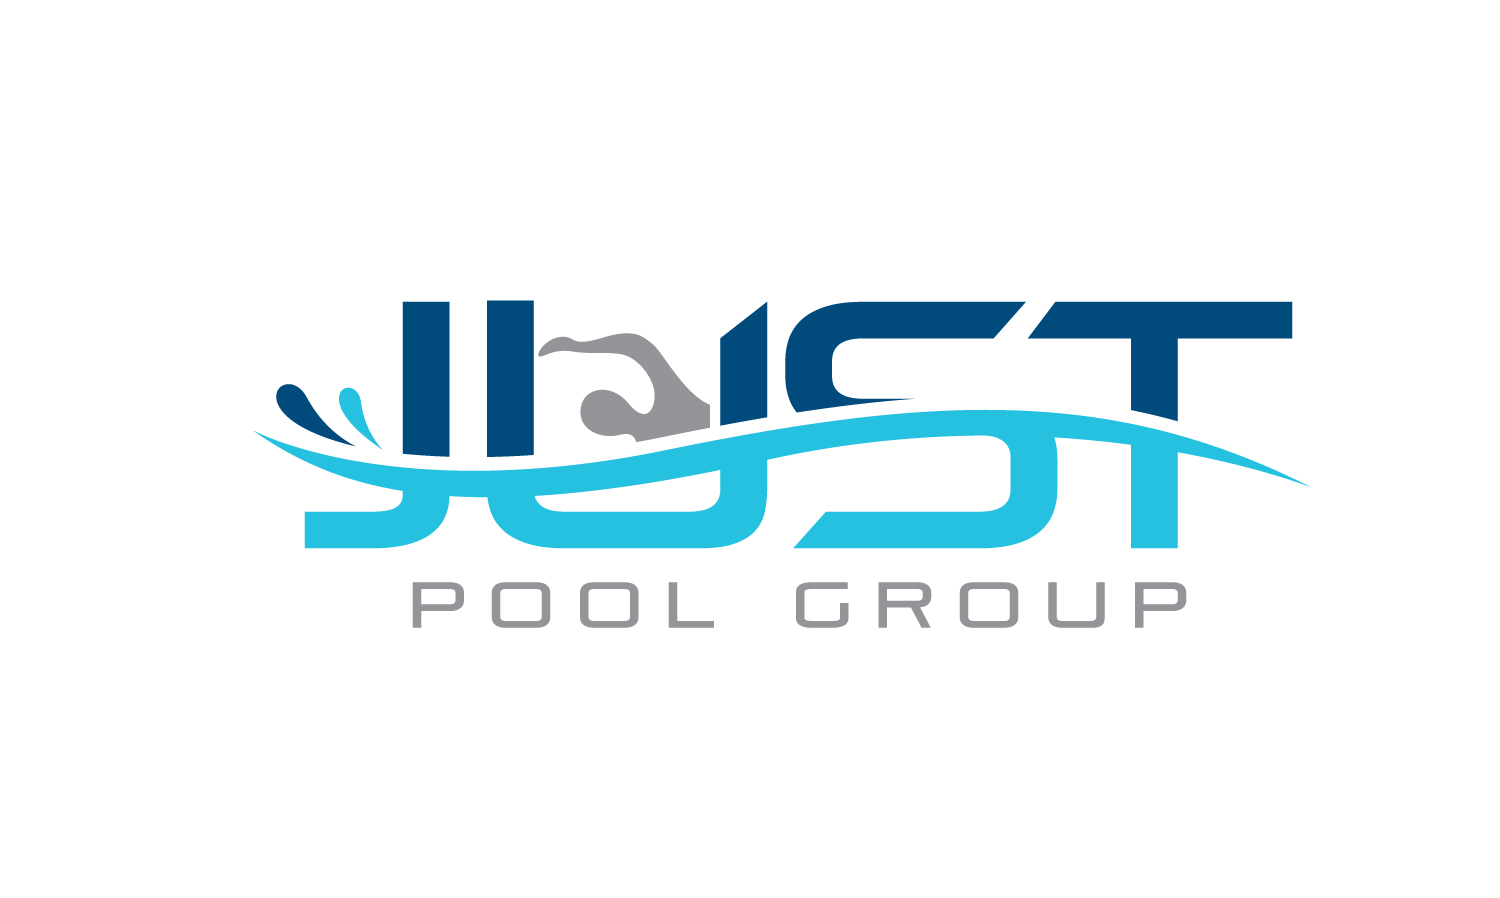 Playful Colorful Logo Design For Just Pool Group By Designguru Design 9770108